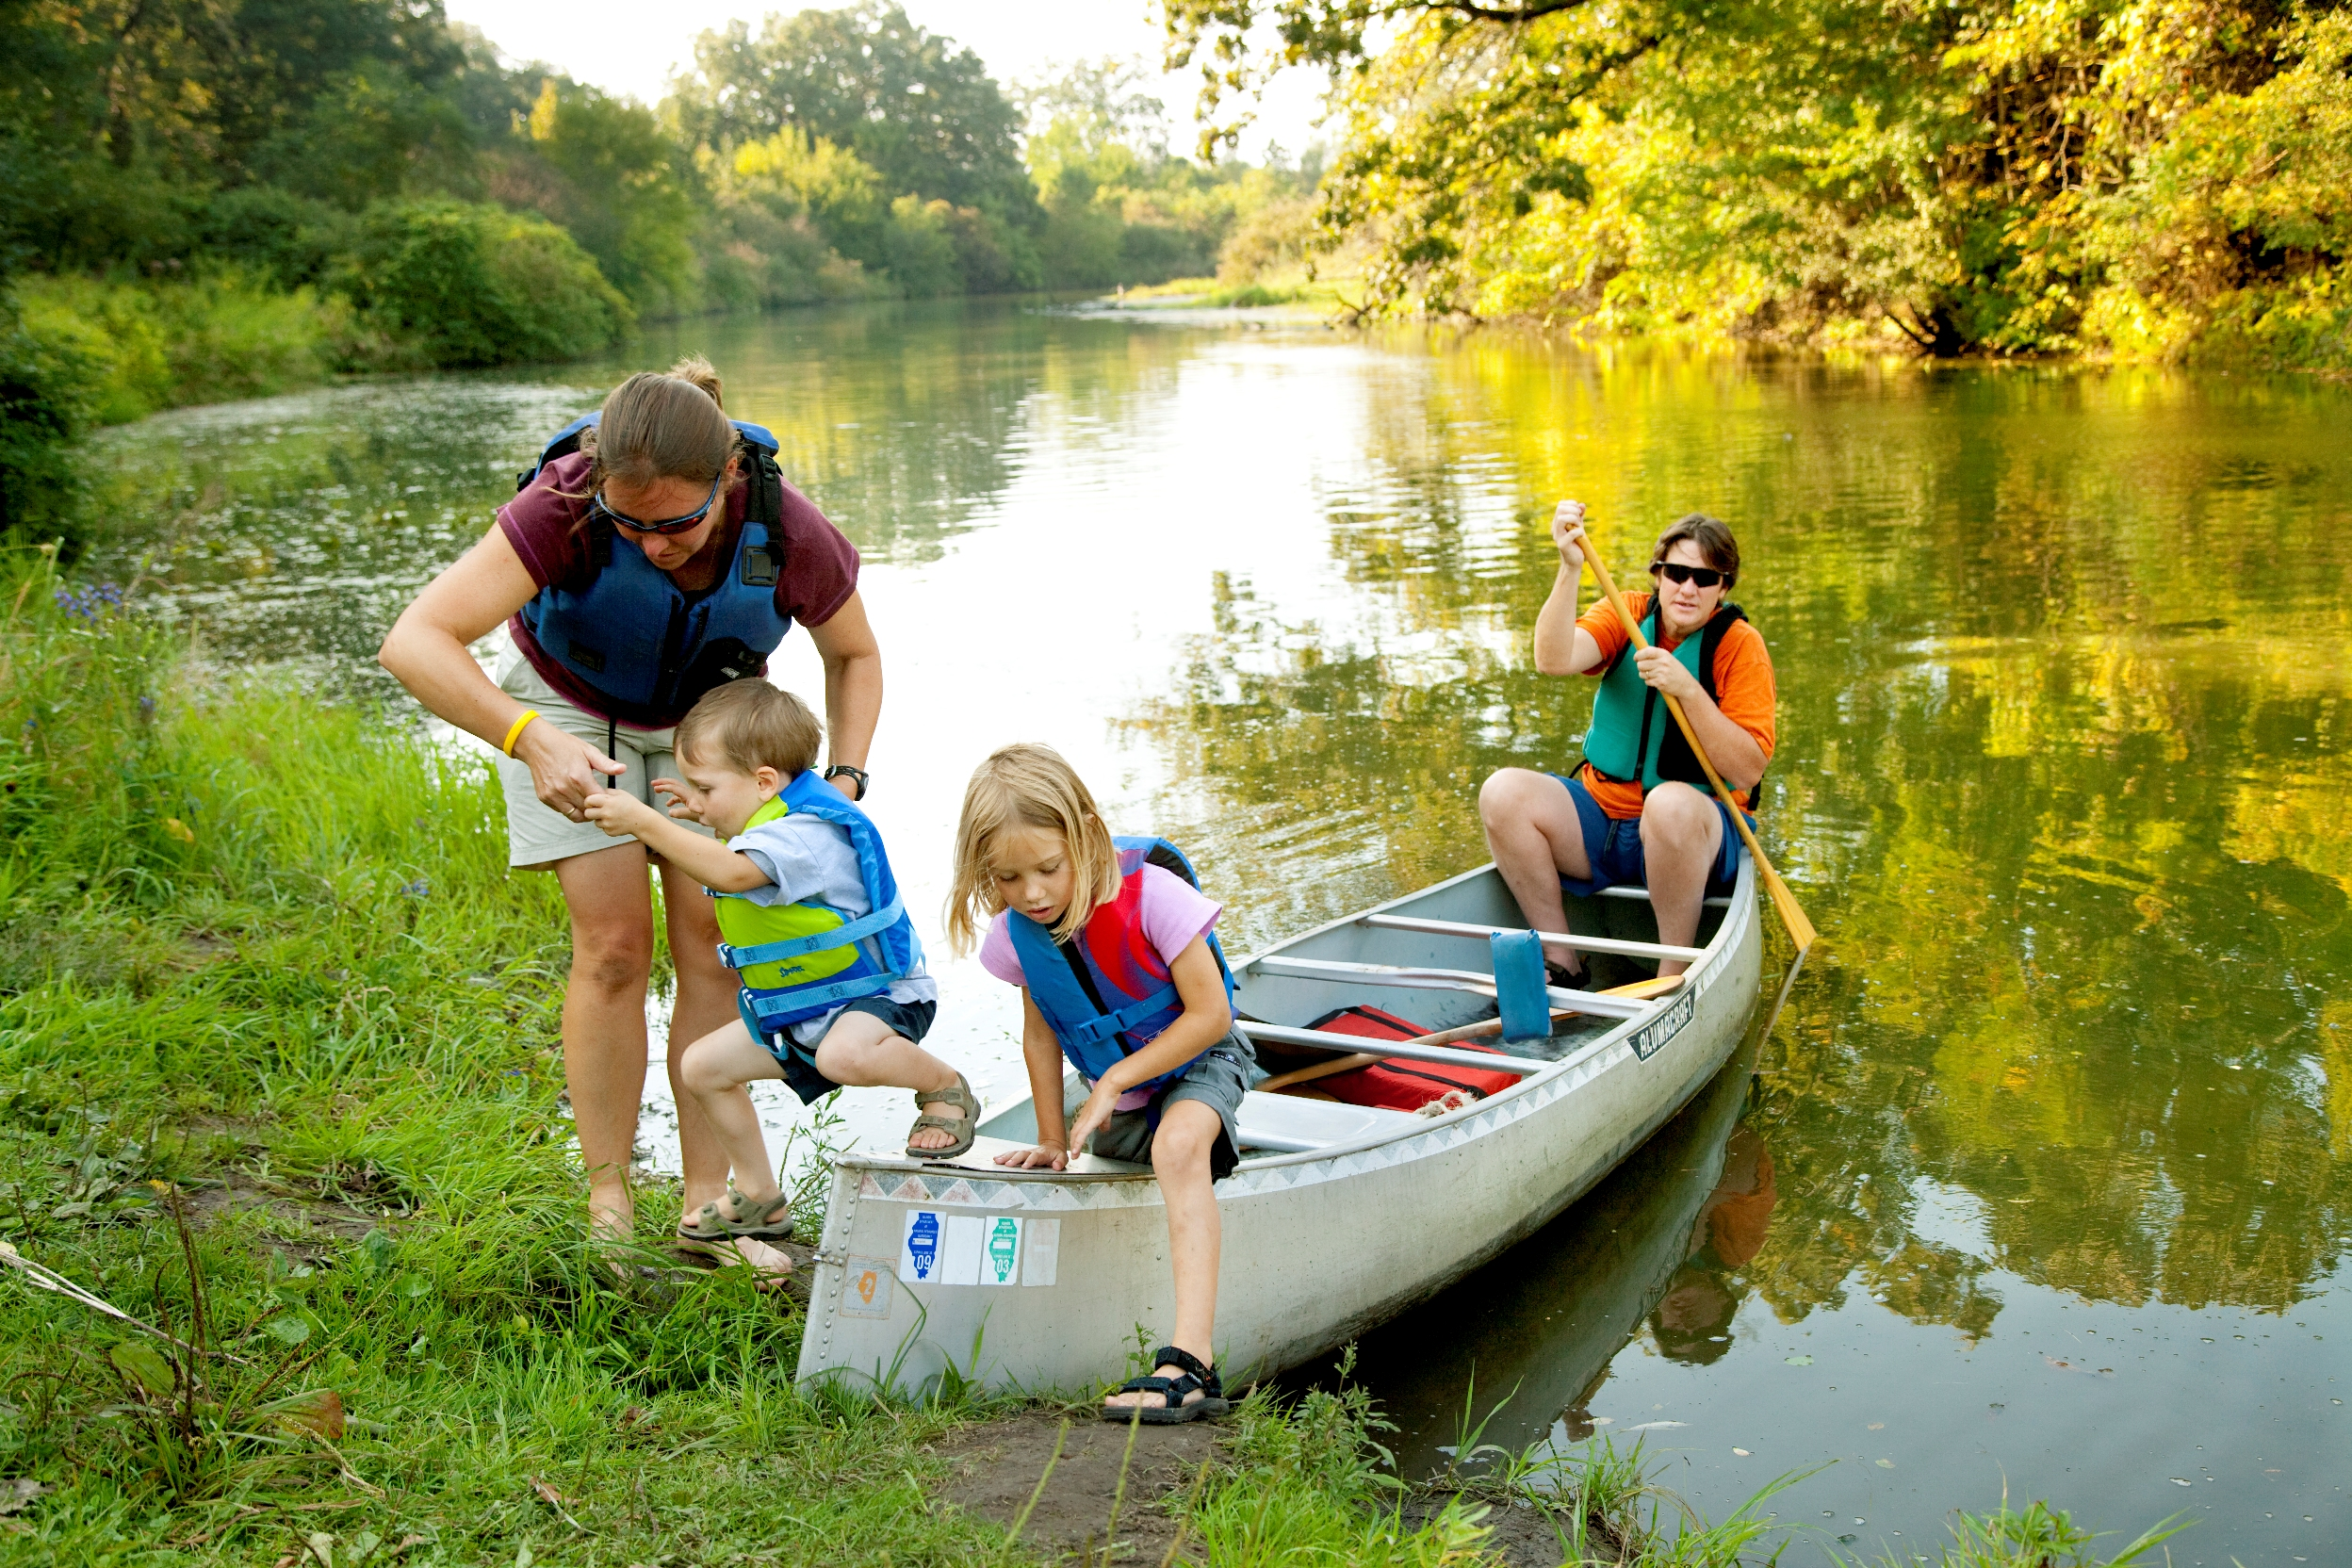 Stand Up Paddle Boarding: A Fun Way to Achieve Health and Fitness